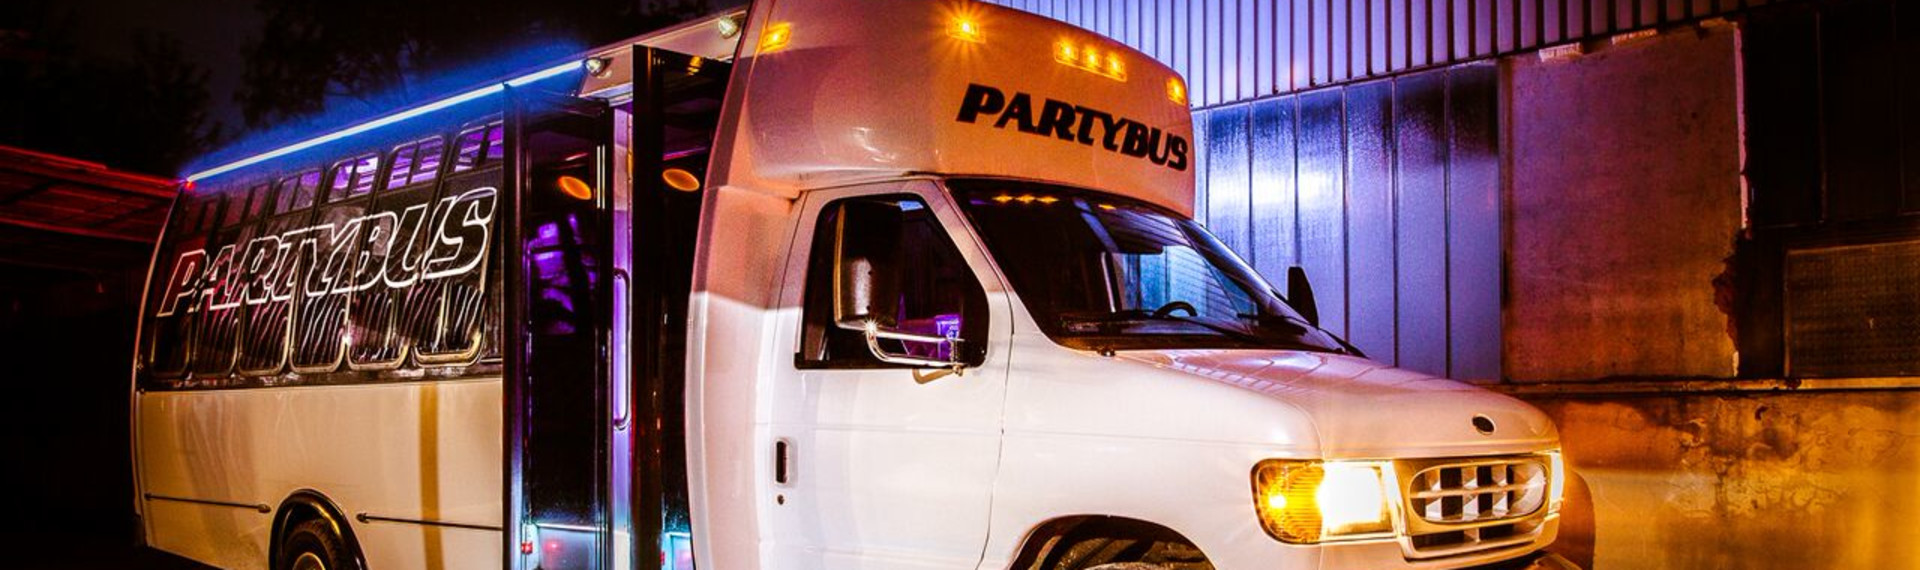 Budapest Party Bus Airport Transfer image